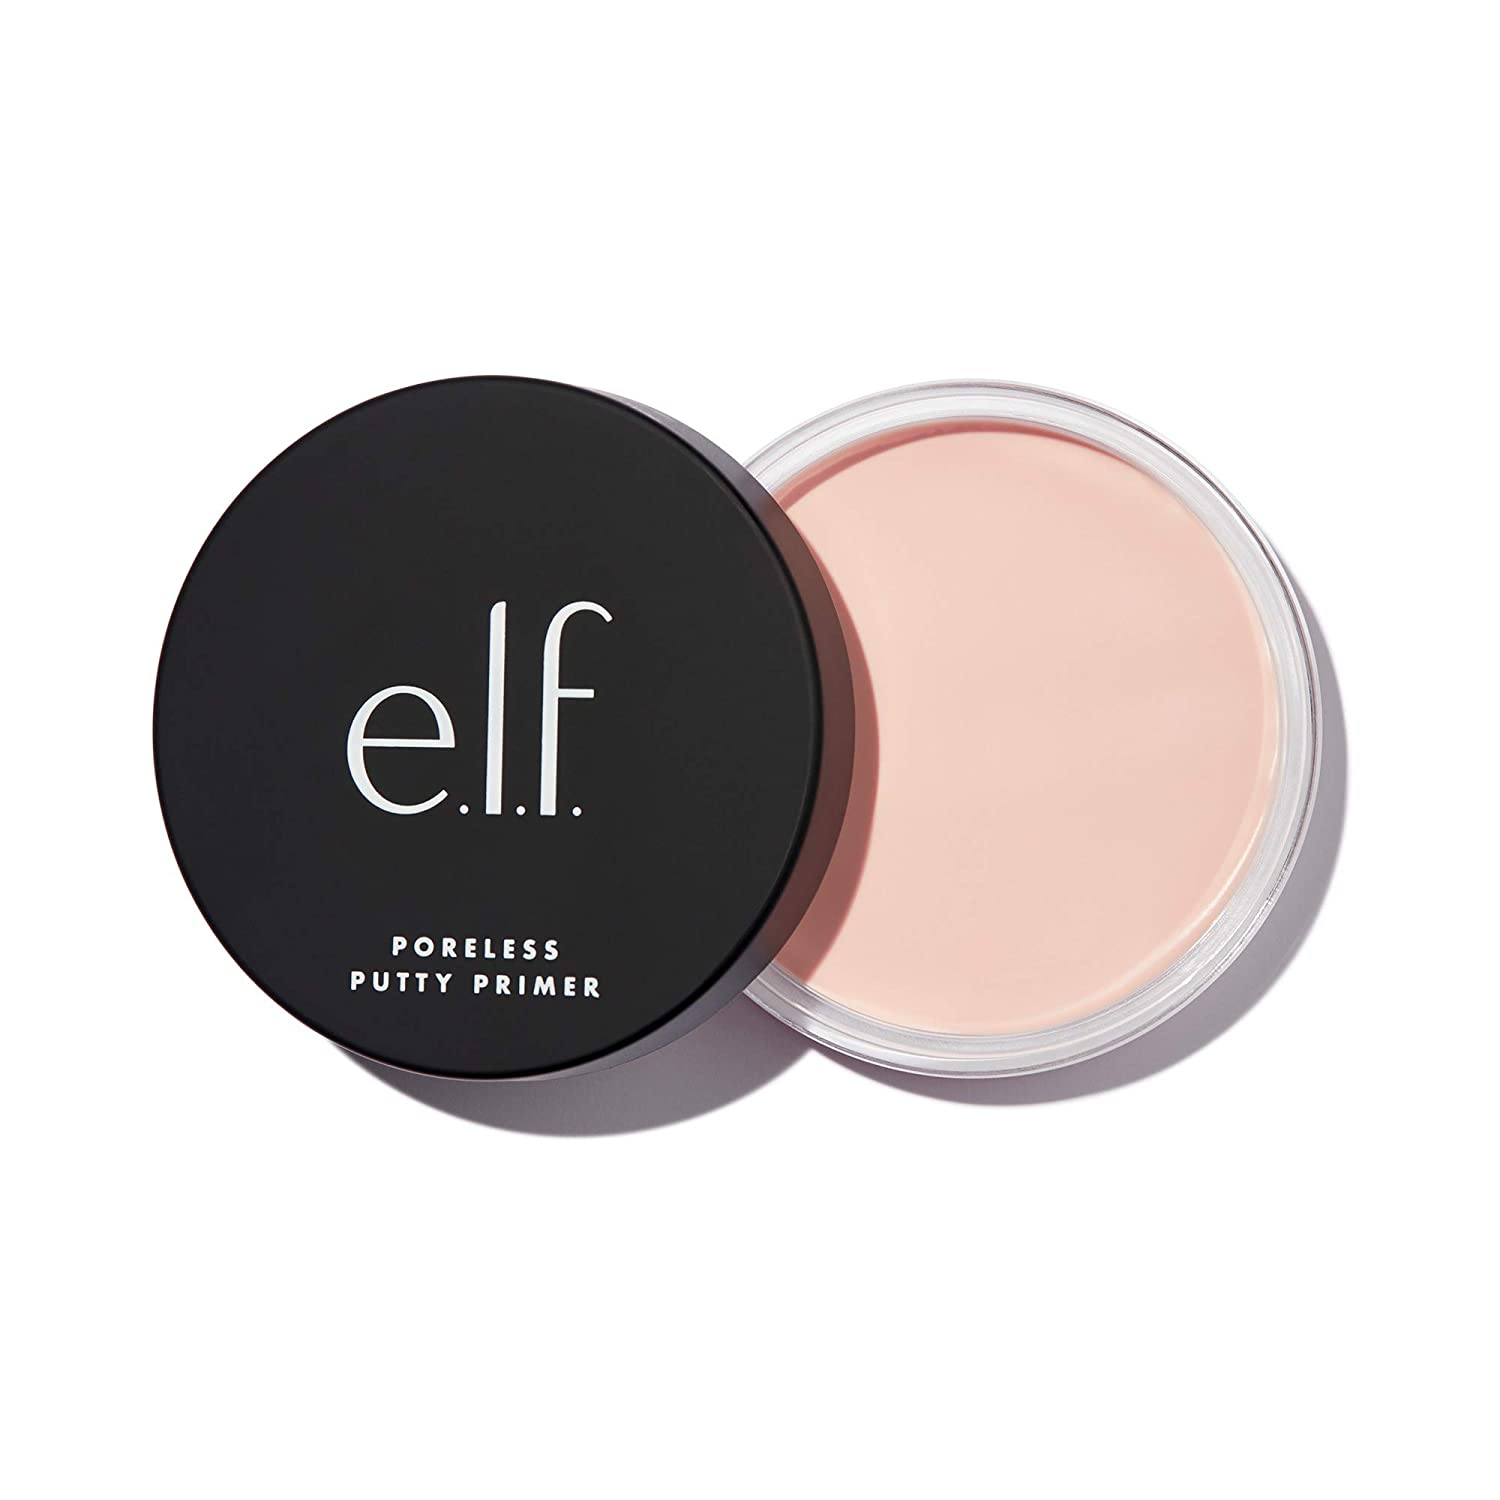 E.l.f Cosmetics - Poreless Putty Primer